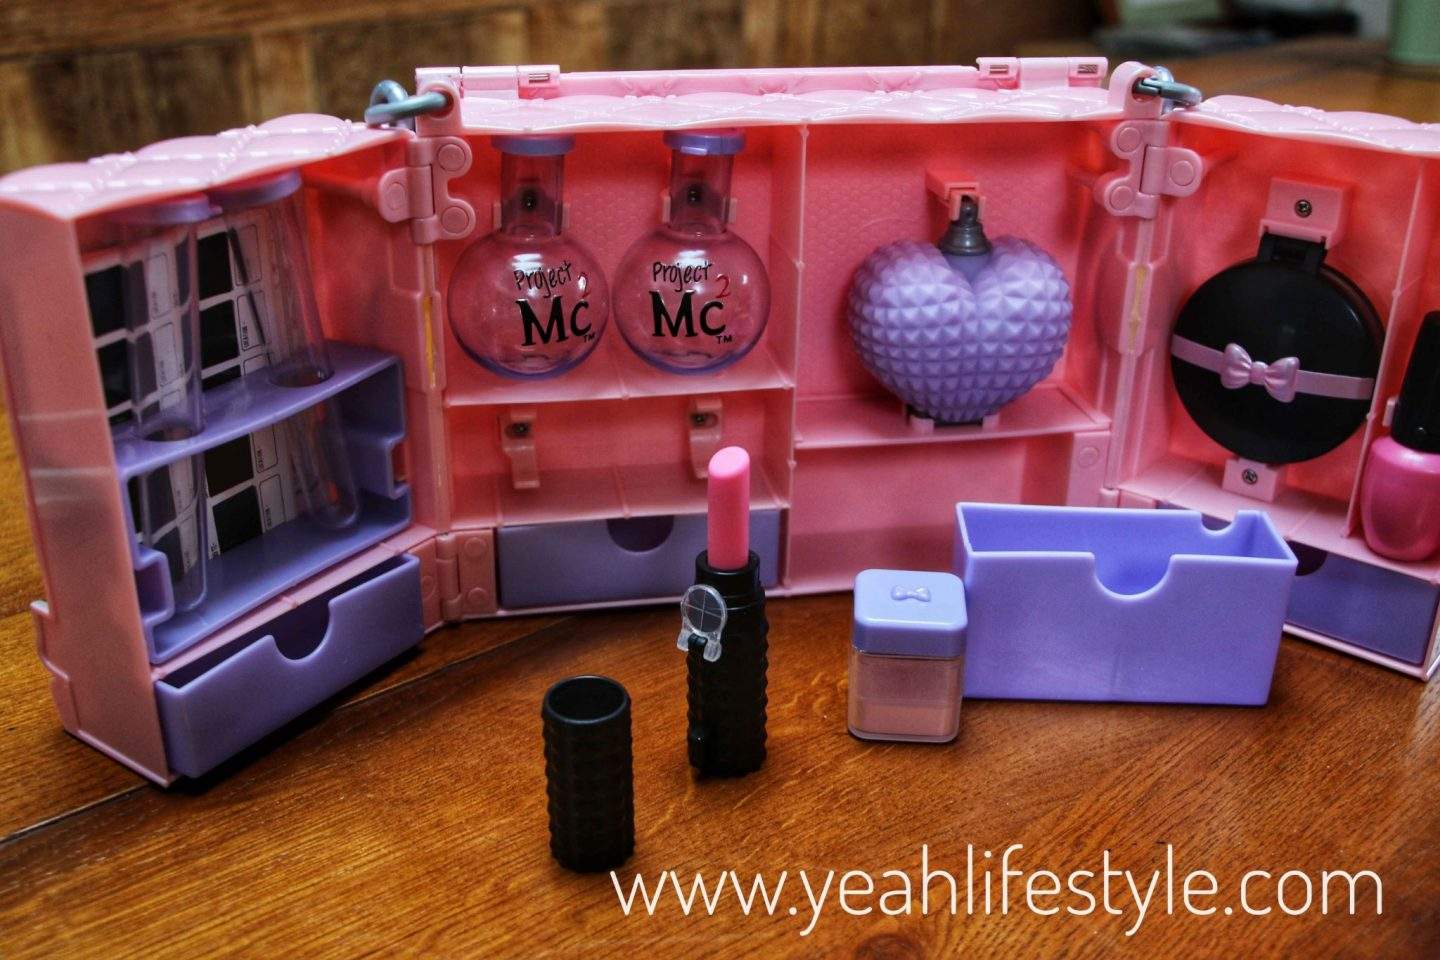 Review-Project-Mc2-Ultimate-Spy-Bag-Girls-Gift-Detective-Science-Items-1